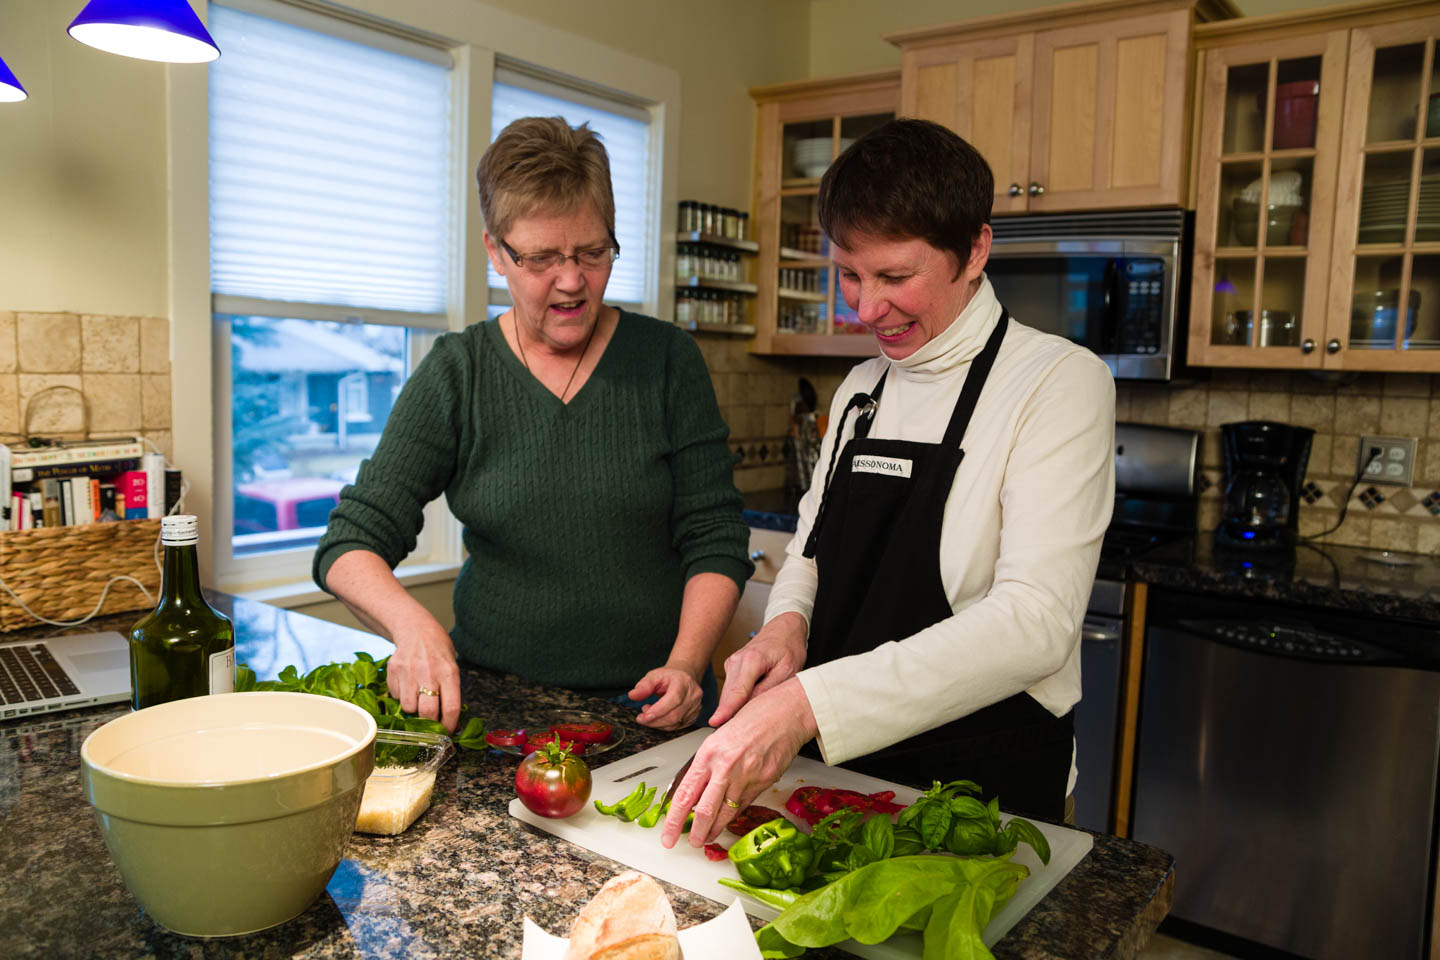 Kody Partridge and Laurie Wood in the kitchen preparing lunch